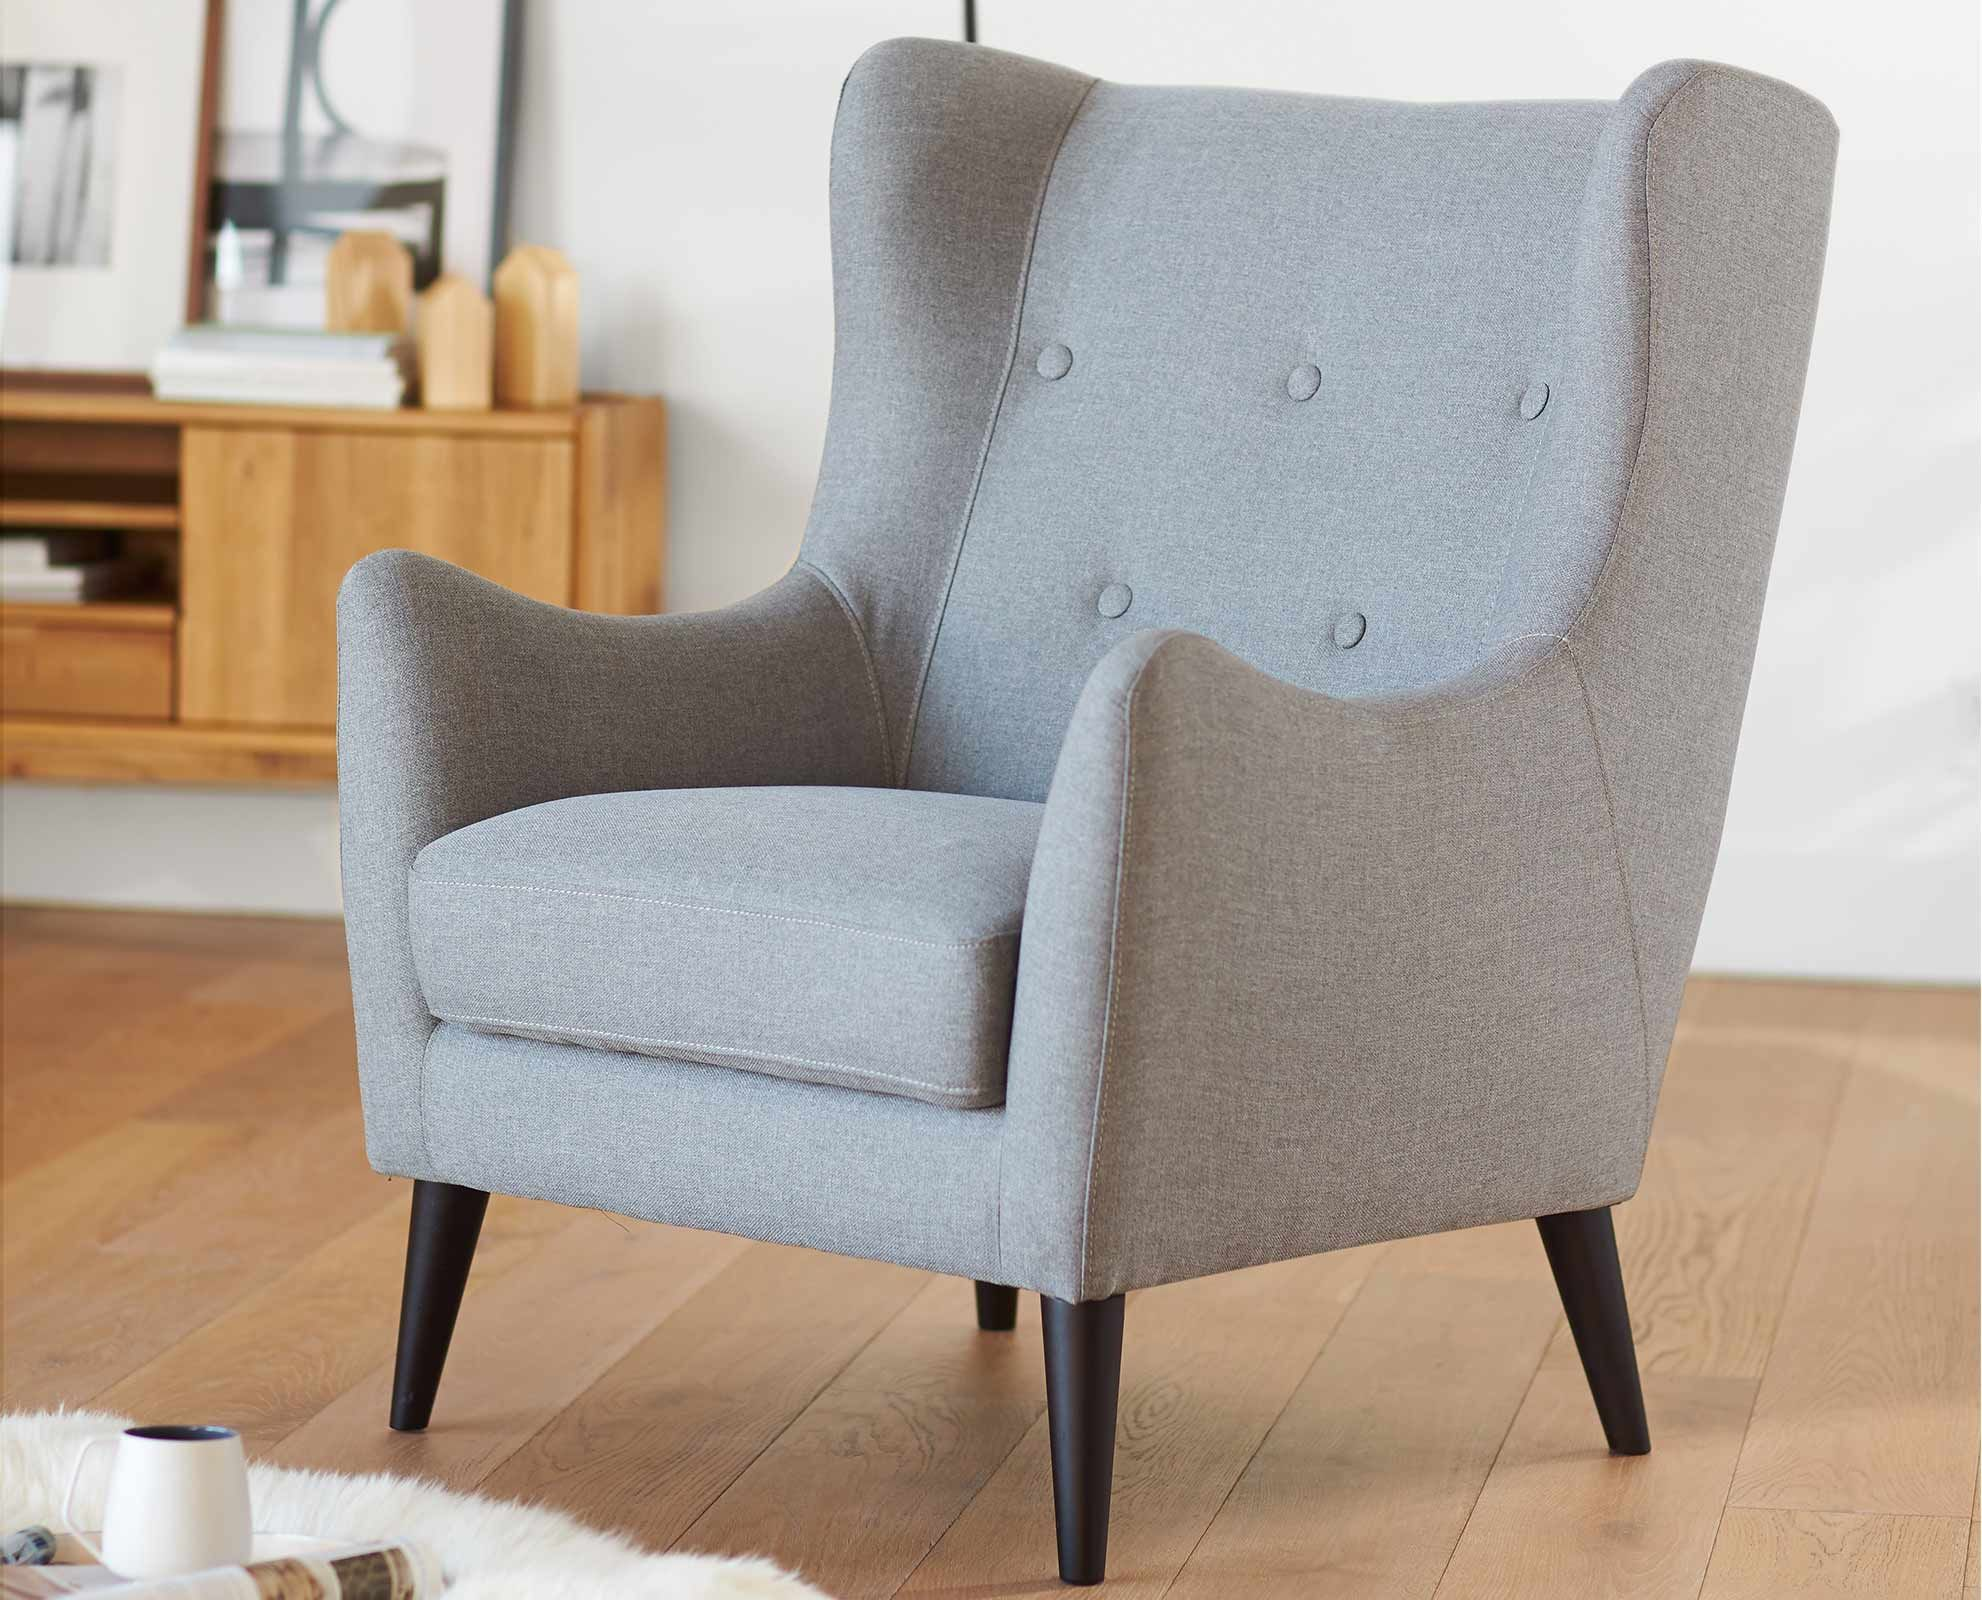 Dania Chairs Dania A Modern Take On A Traditional Wingback Chair The